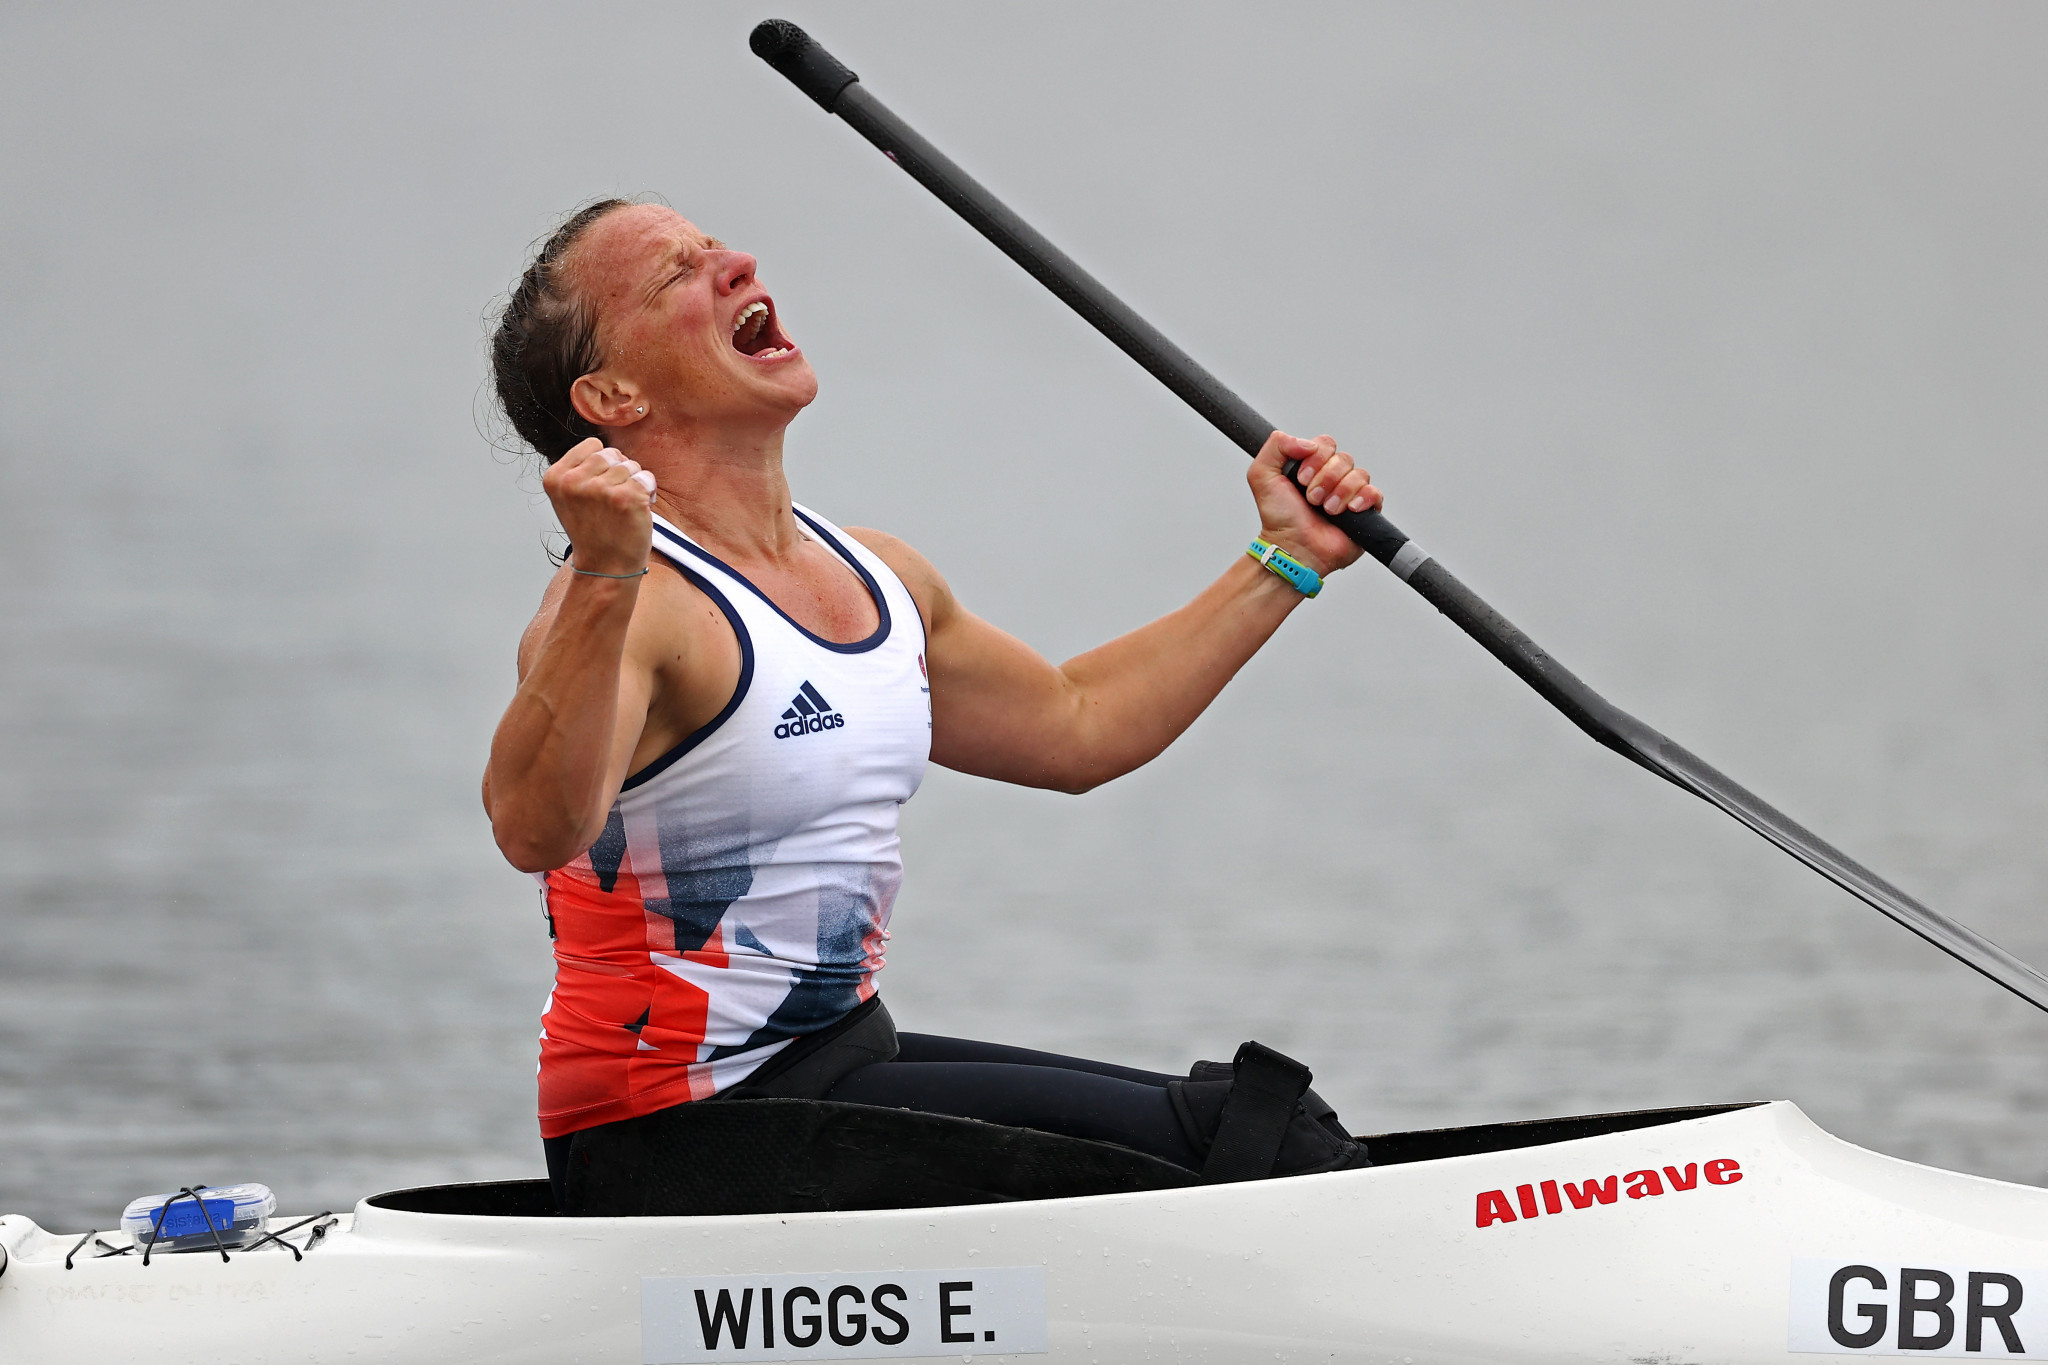 Britain's Eyers and Wiggs win gold at ICF Para Canoe World Championships